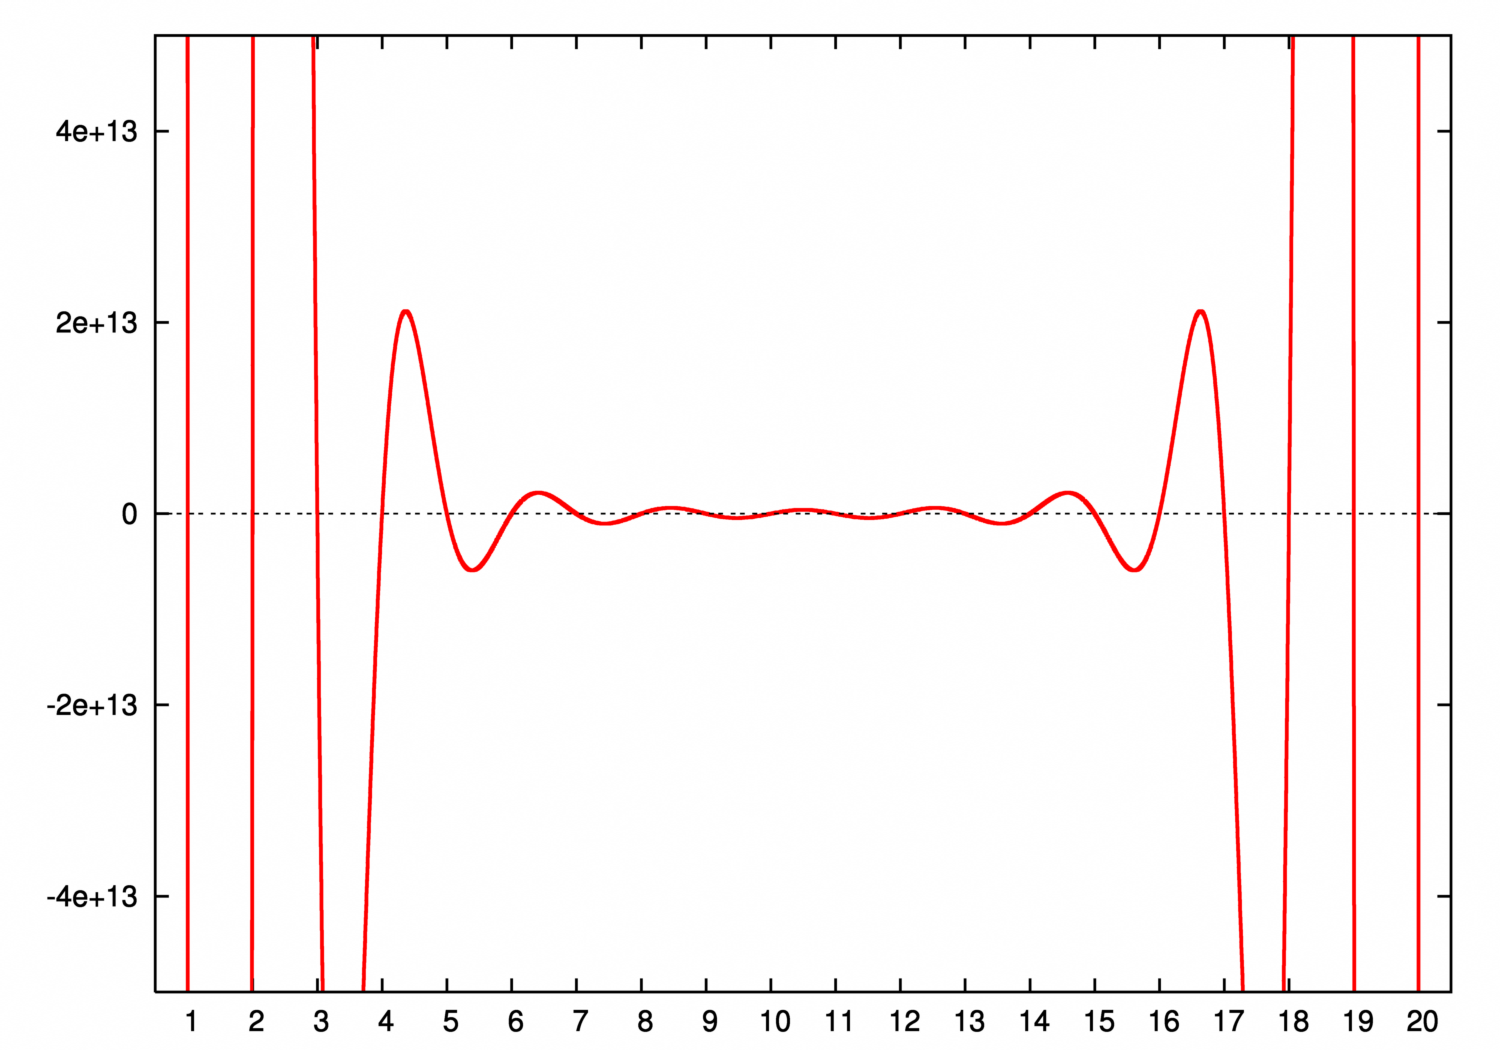 Polynomial Png - File:Wilkinson polynomial.png - Wikimedia Commons